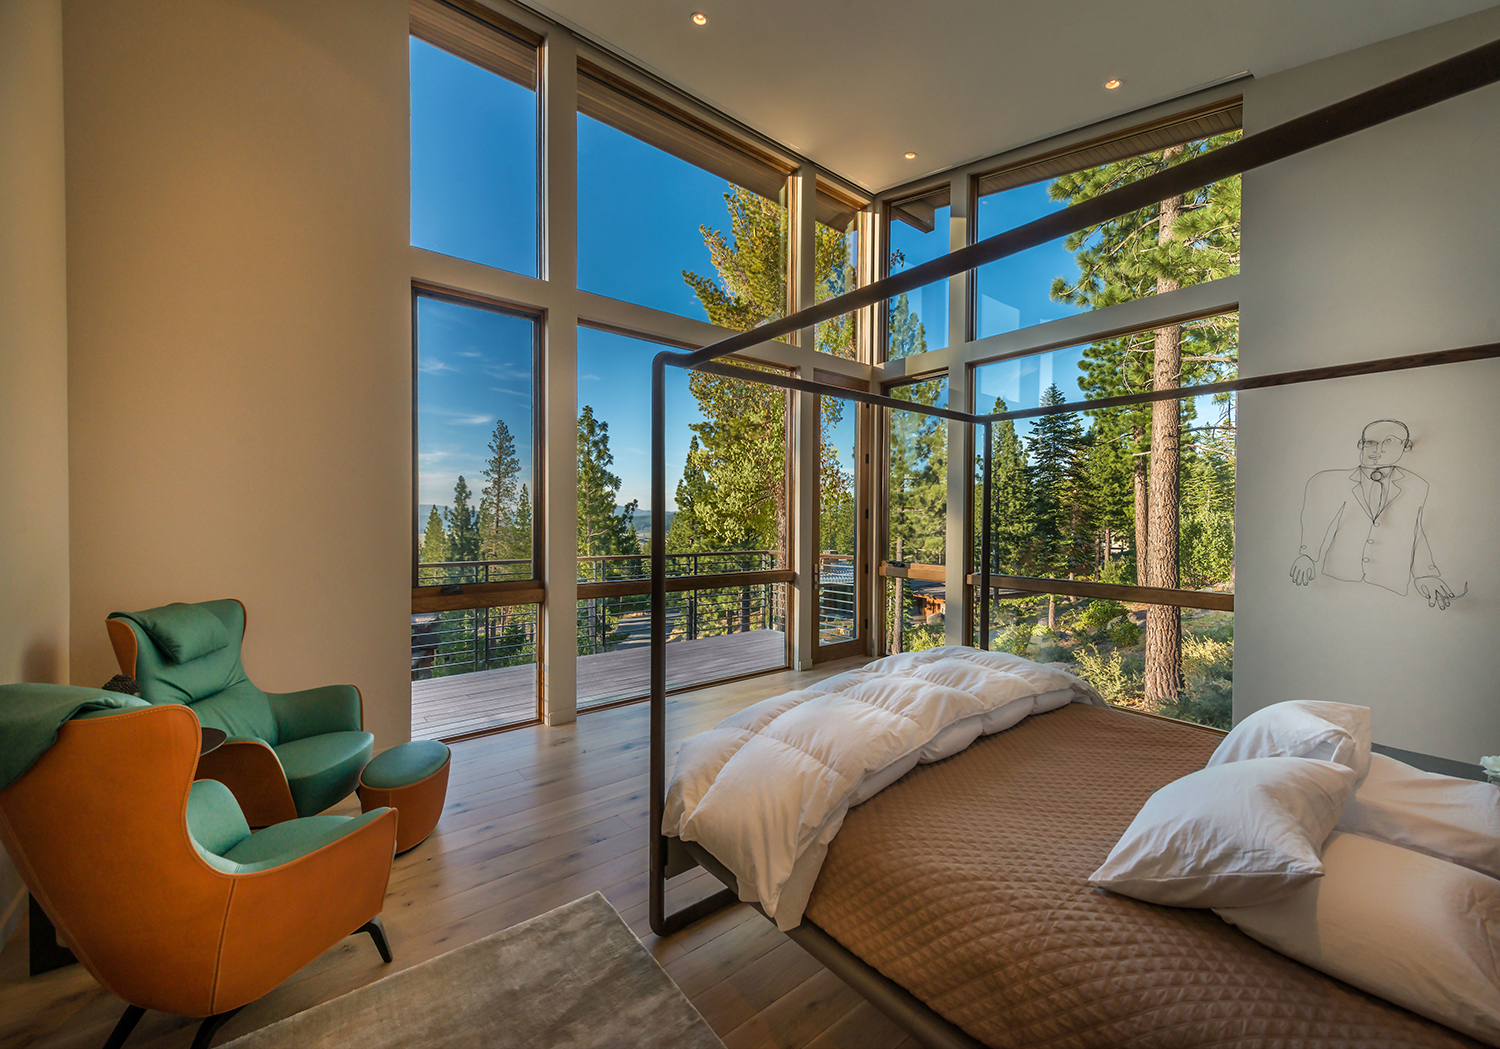 Lot 595_Master Bedroom_Windows_Deck.jpg